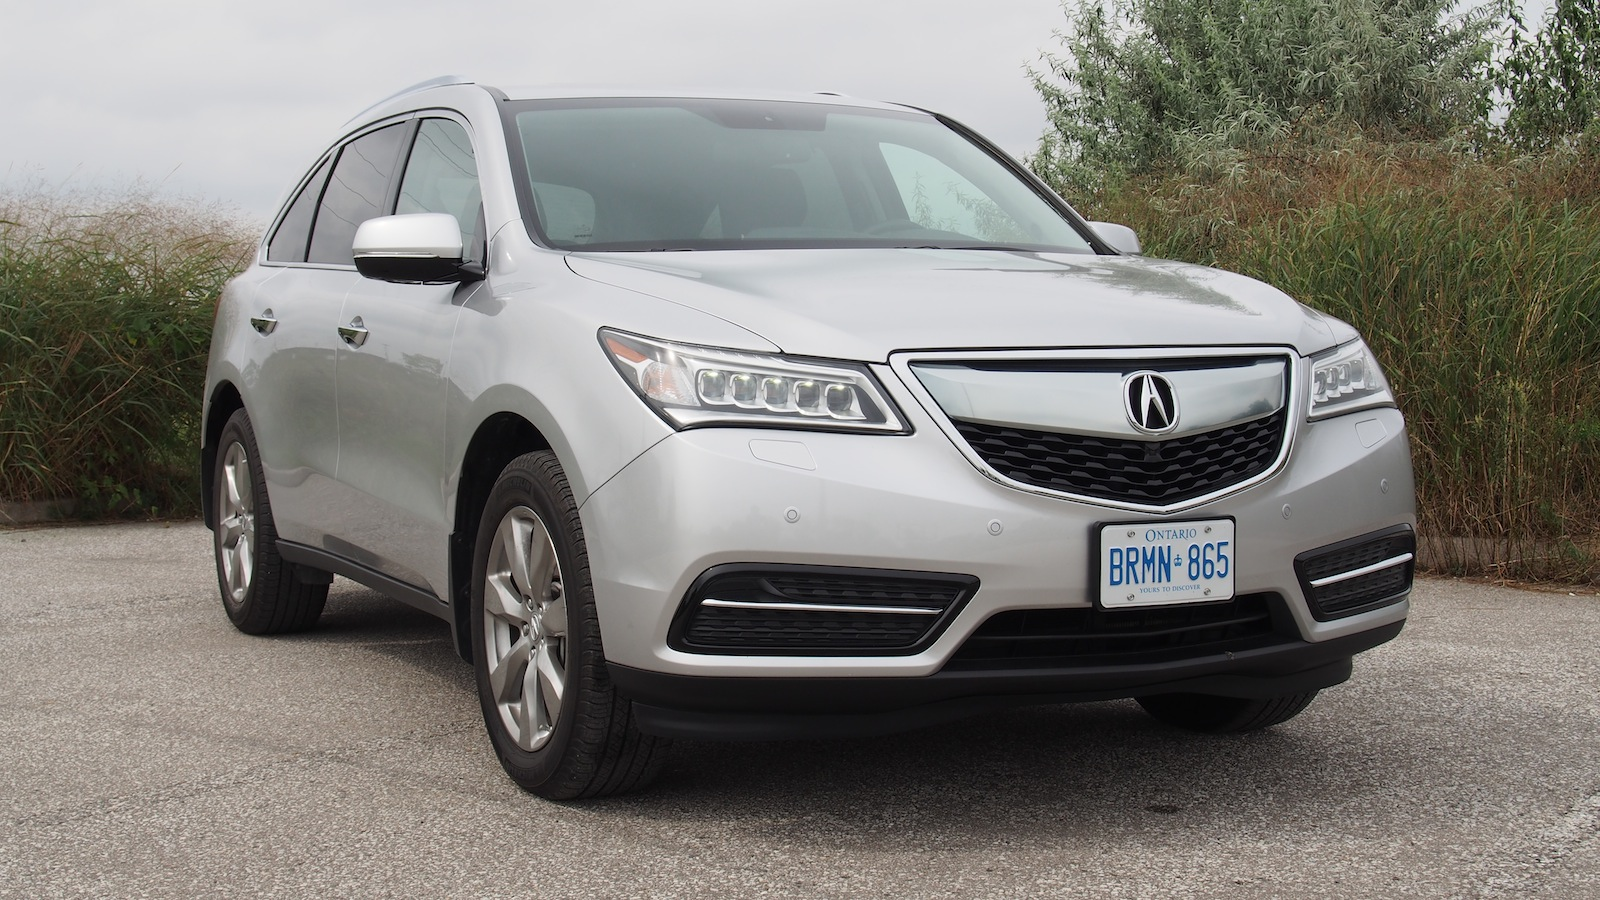 2014 acura mdx elite review cars photos test drives and reviews canadian auto review. Black Bedroom Furniture Sets. Home Design Ideas